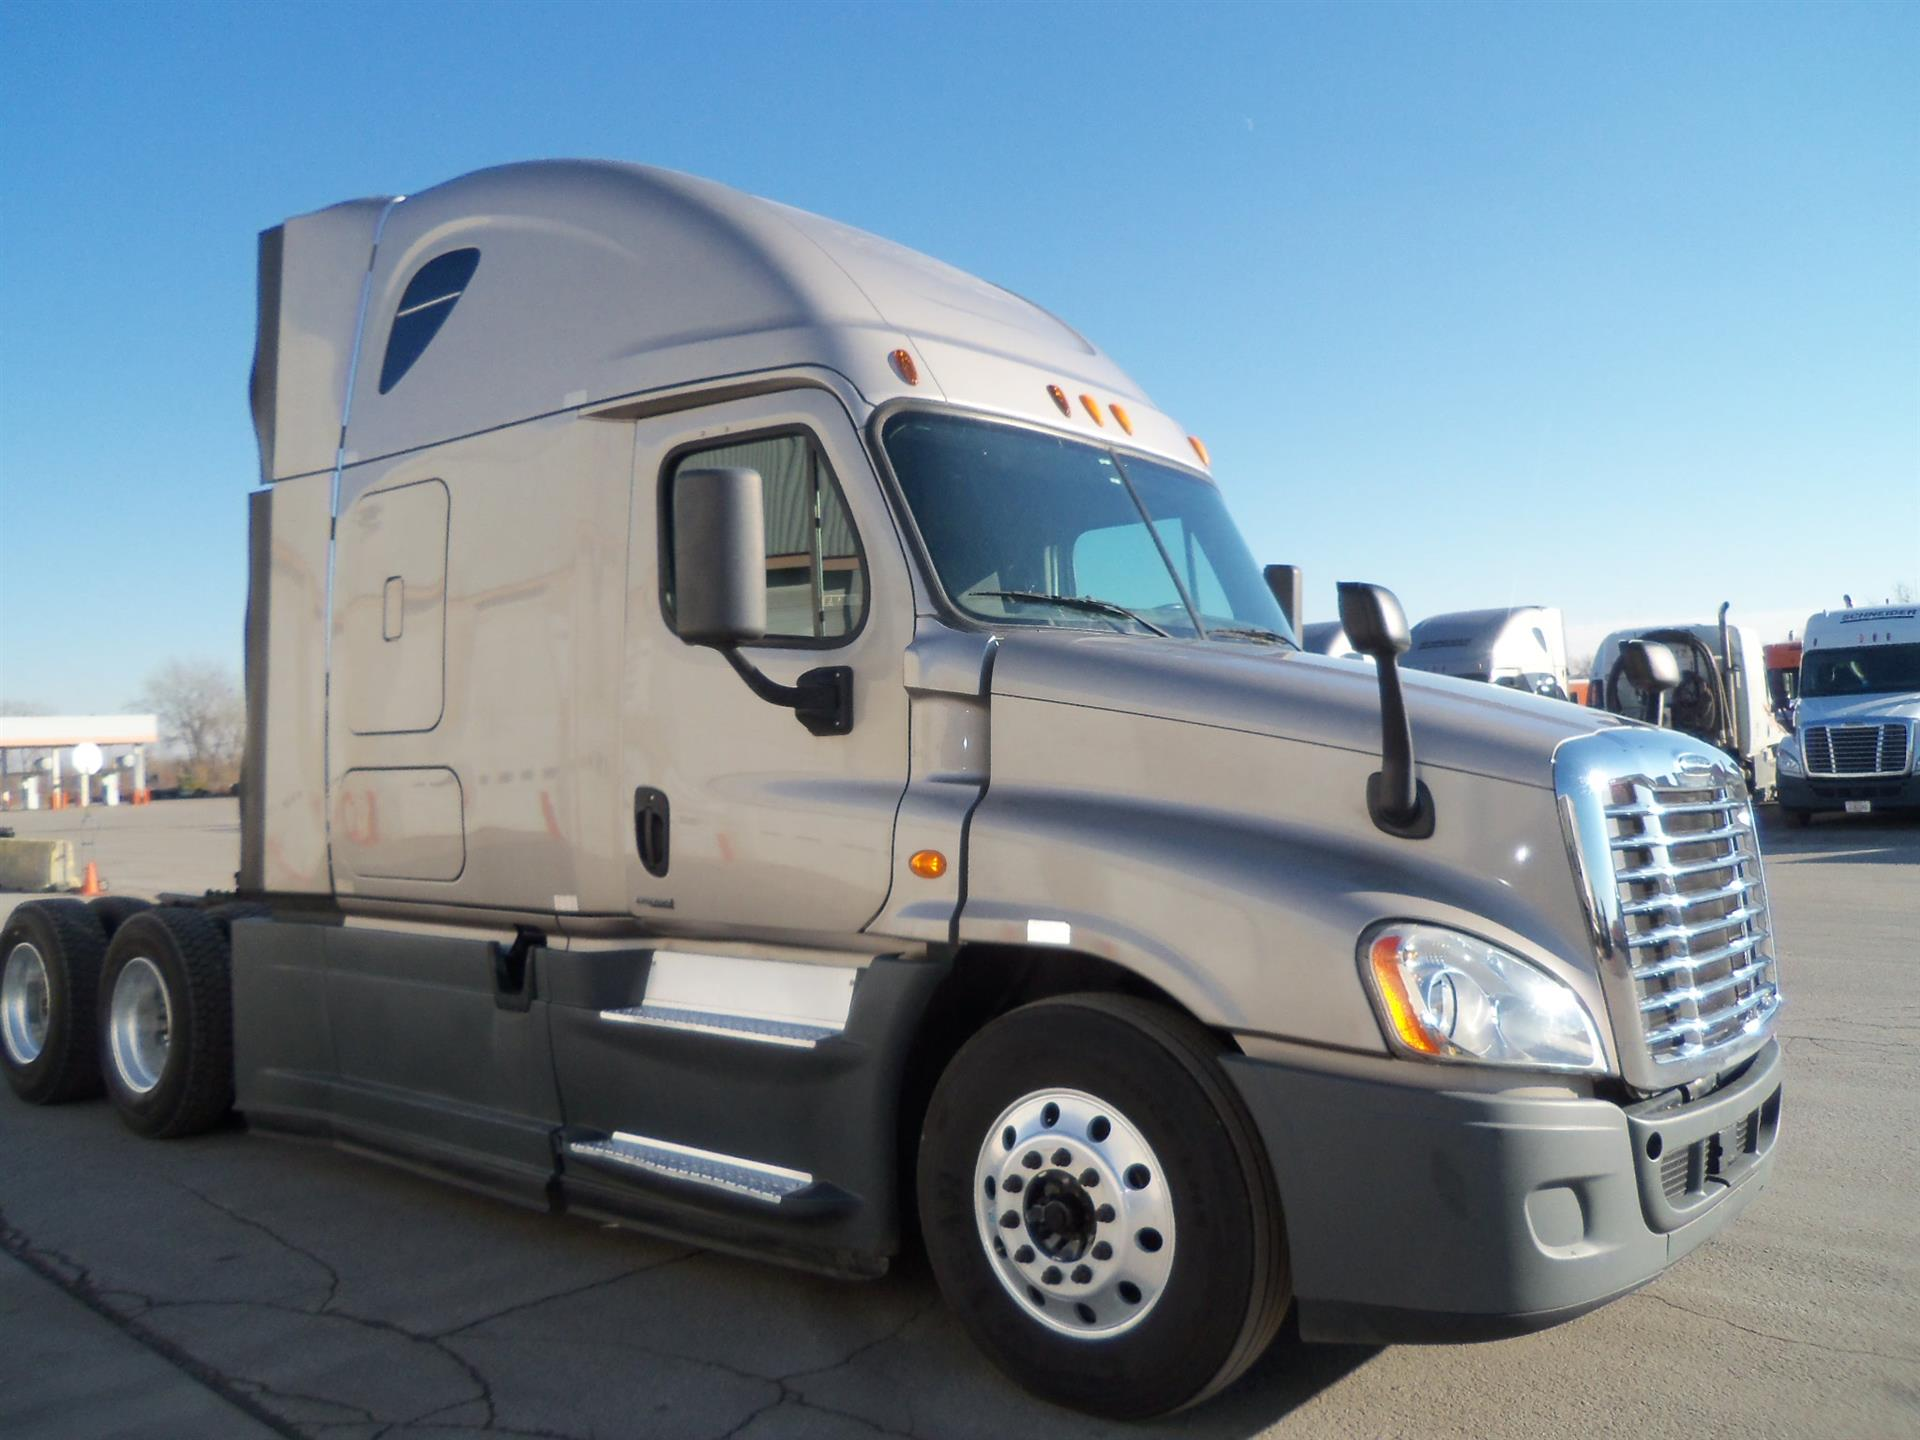 USED 2014 FREIGHTLINER CASCADIA SLEEPER TRUCK #135945